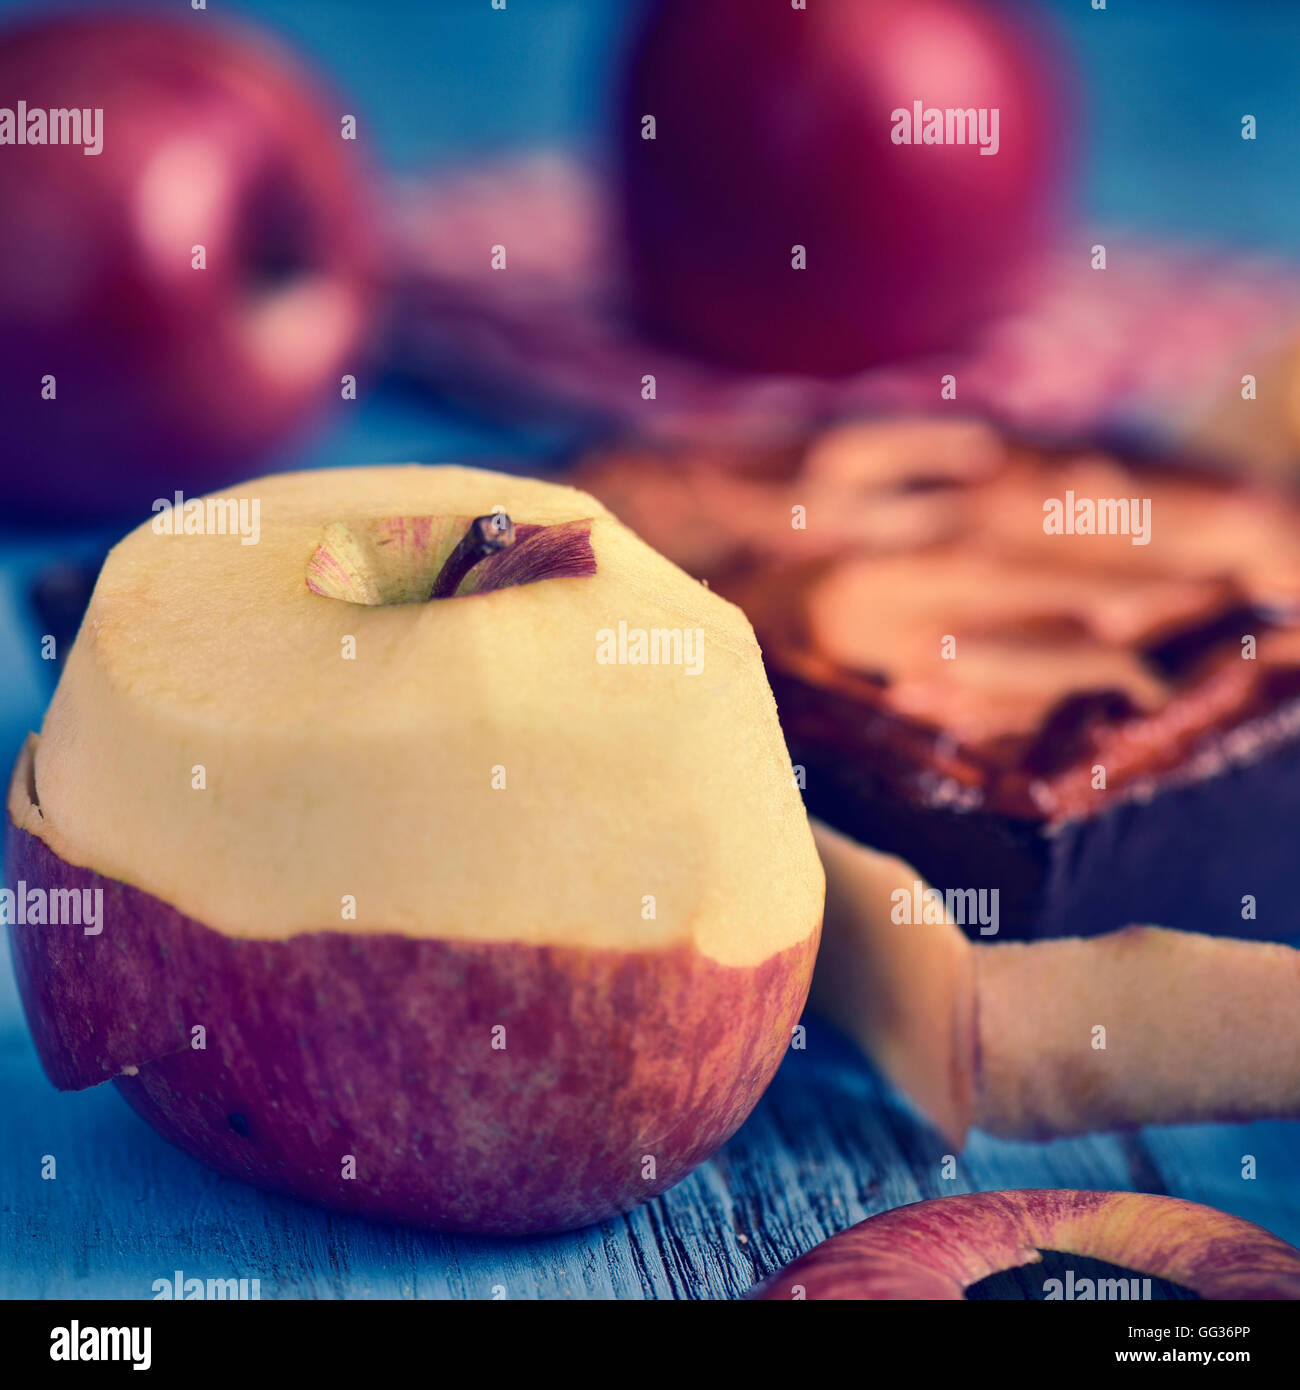 closeup of an apple cake and some red apples on a blue rustic wooden table, with a filter effect - Stock Image